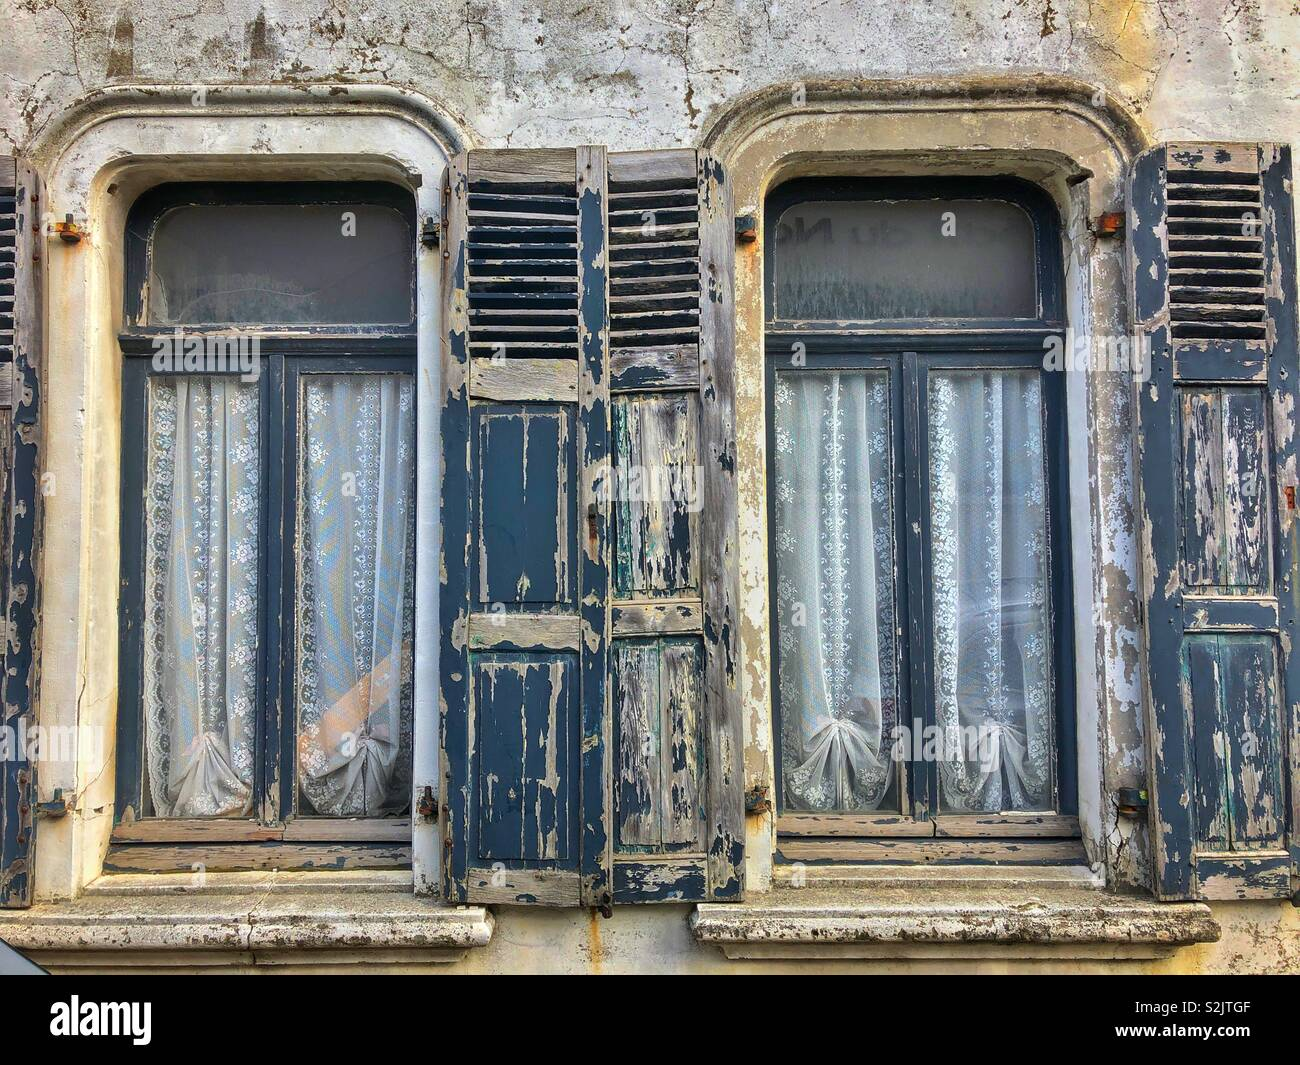 Old shuttered windows in a french town - Stock Image